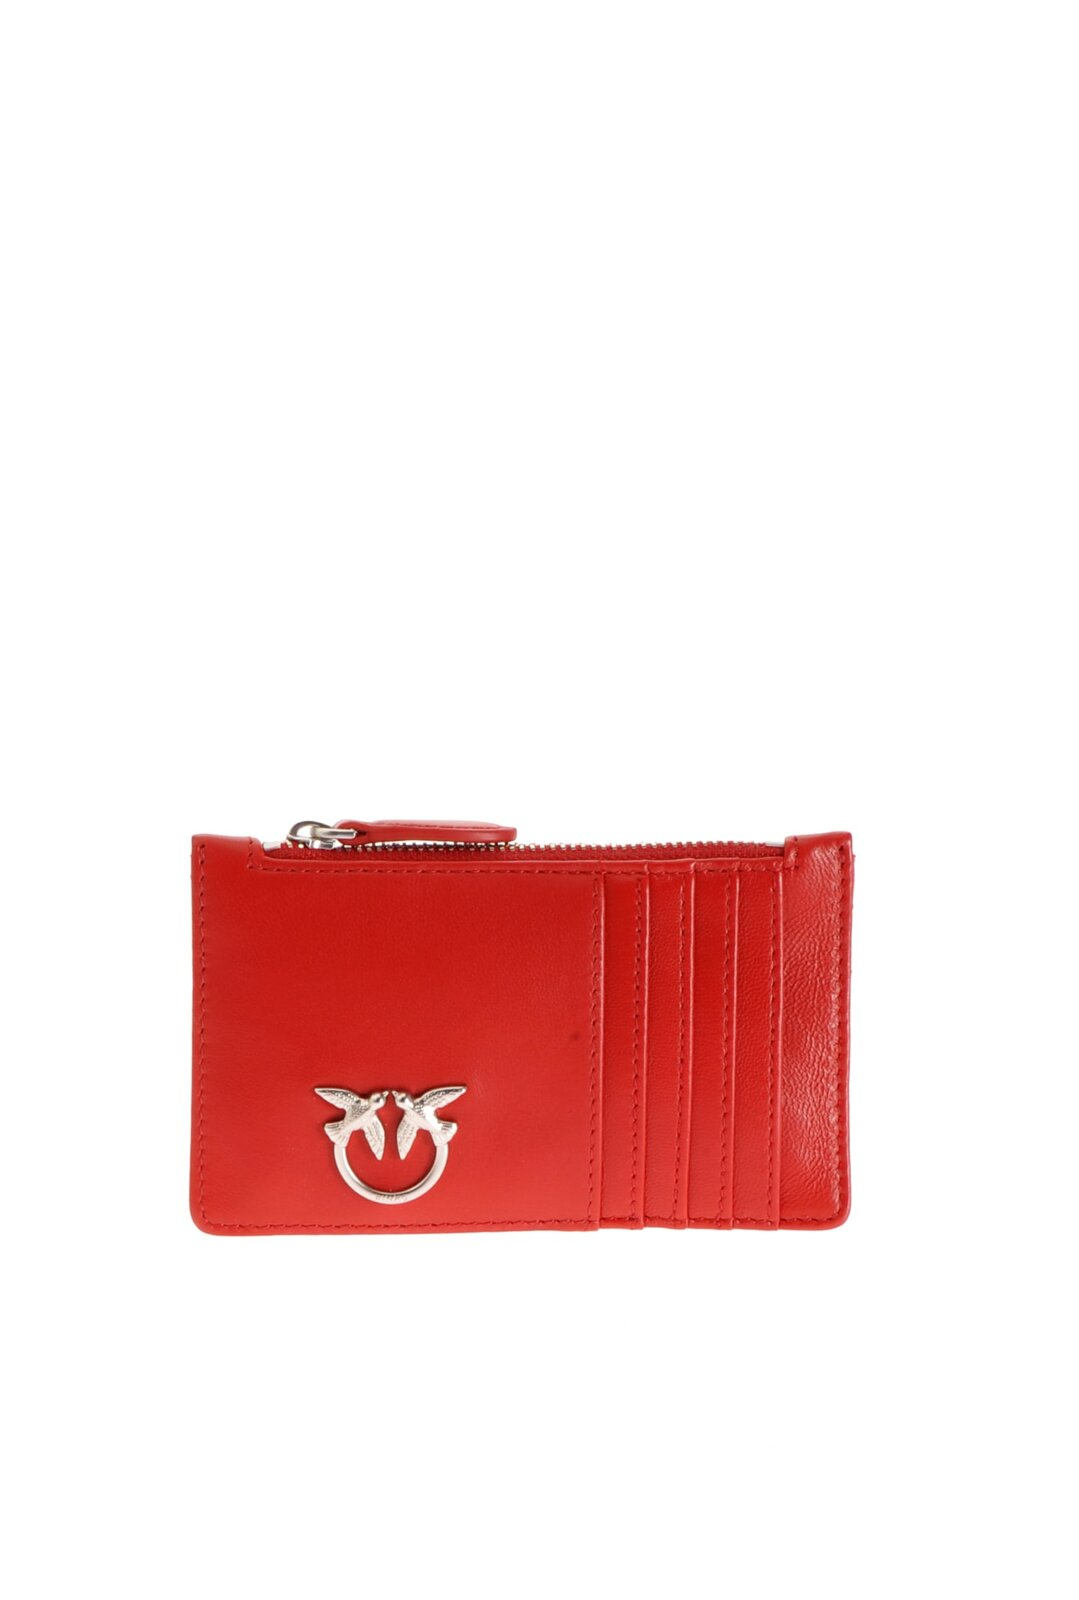 Credit Card Holder In Nappa Leather With Zip - Pinko